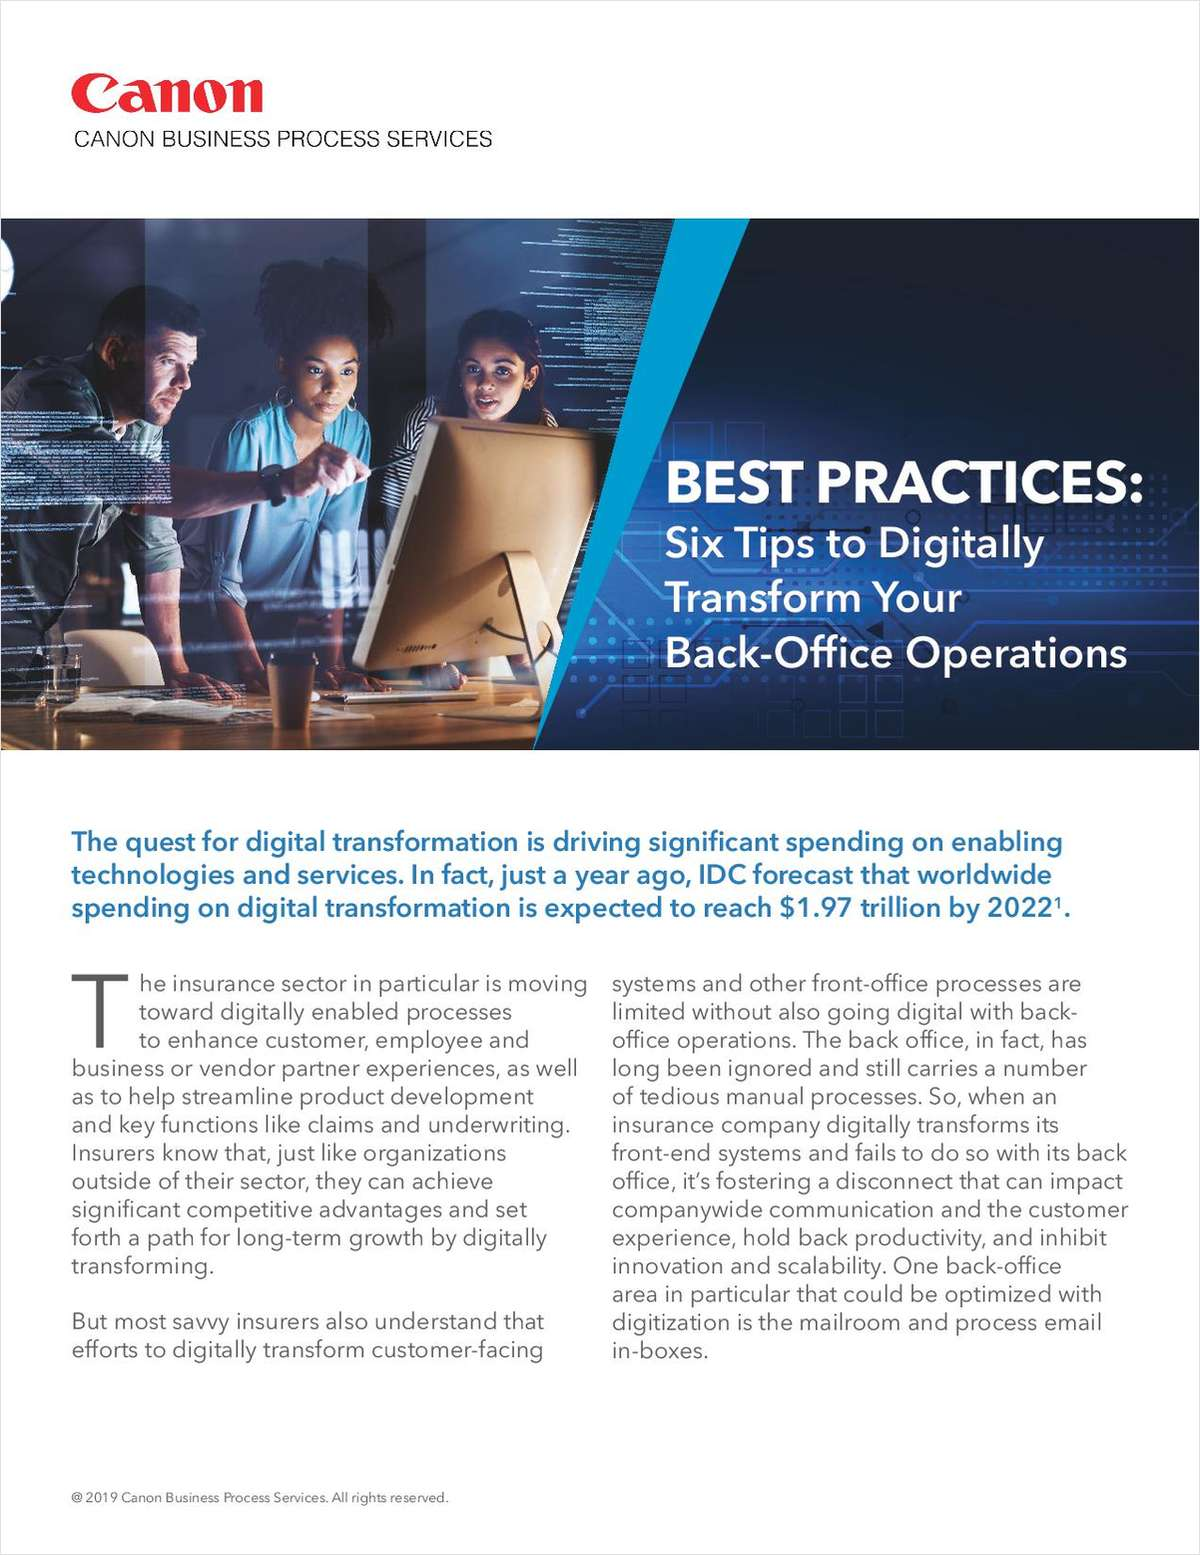 Best Practices: Six Tips to Digitally Transform Your Back-Office Operations